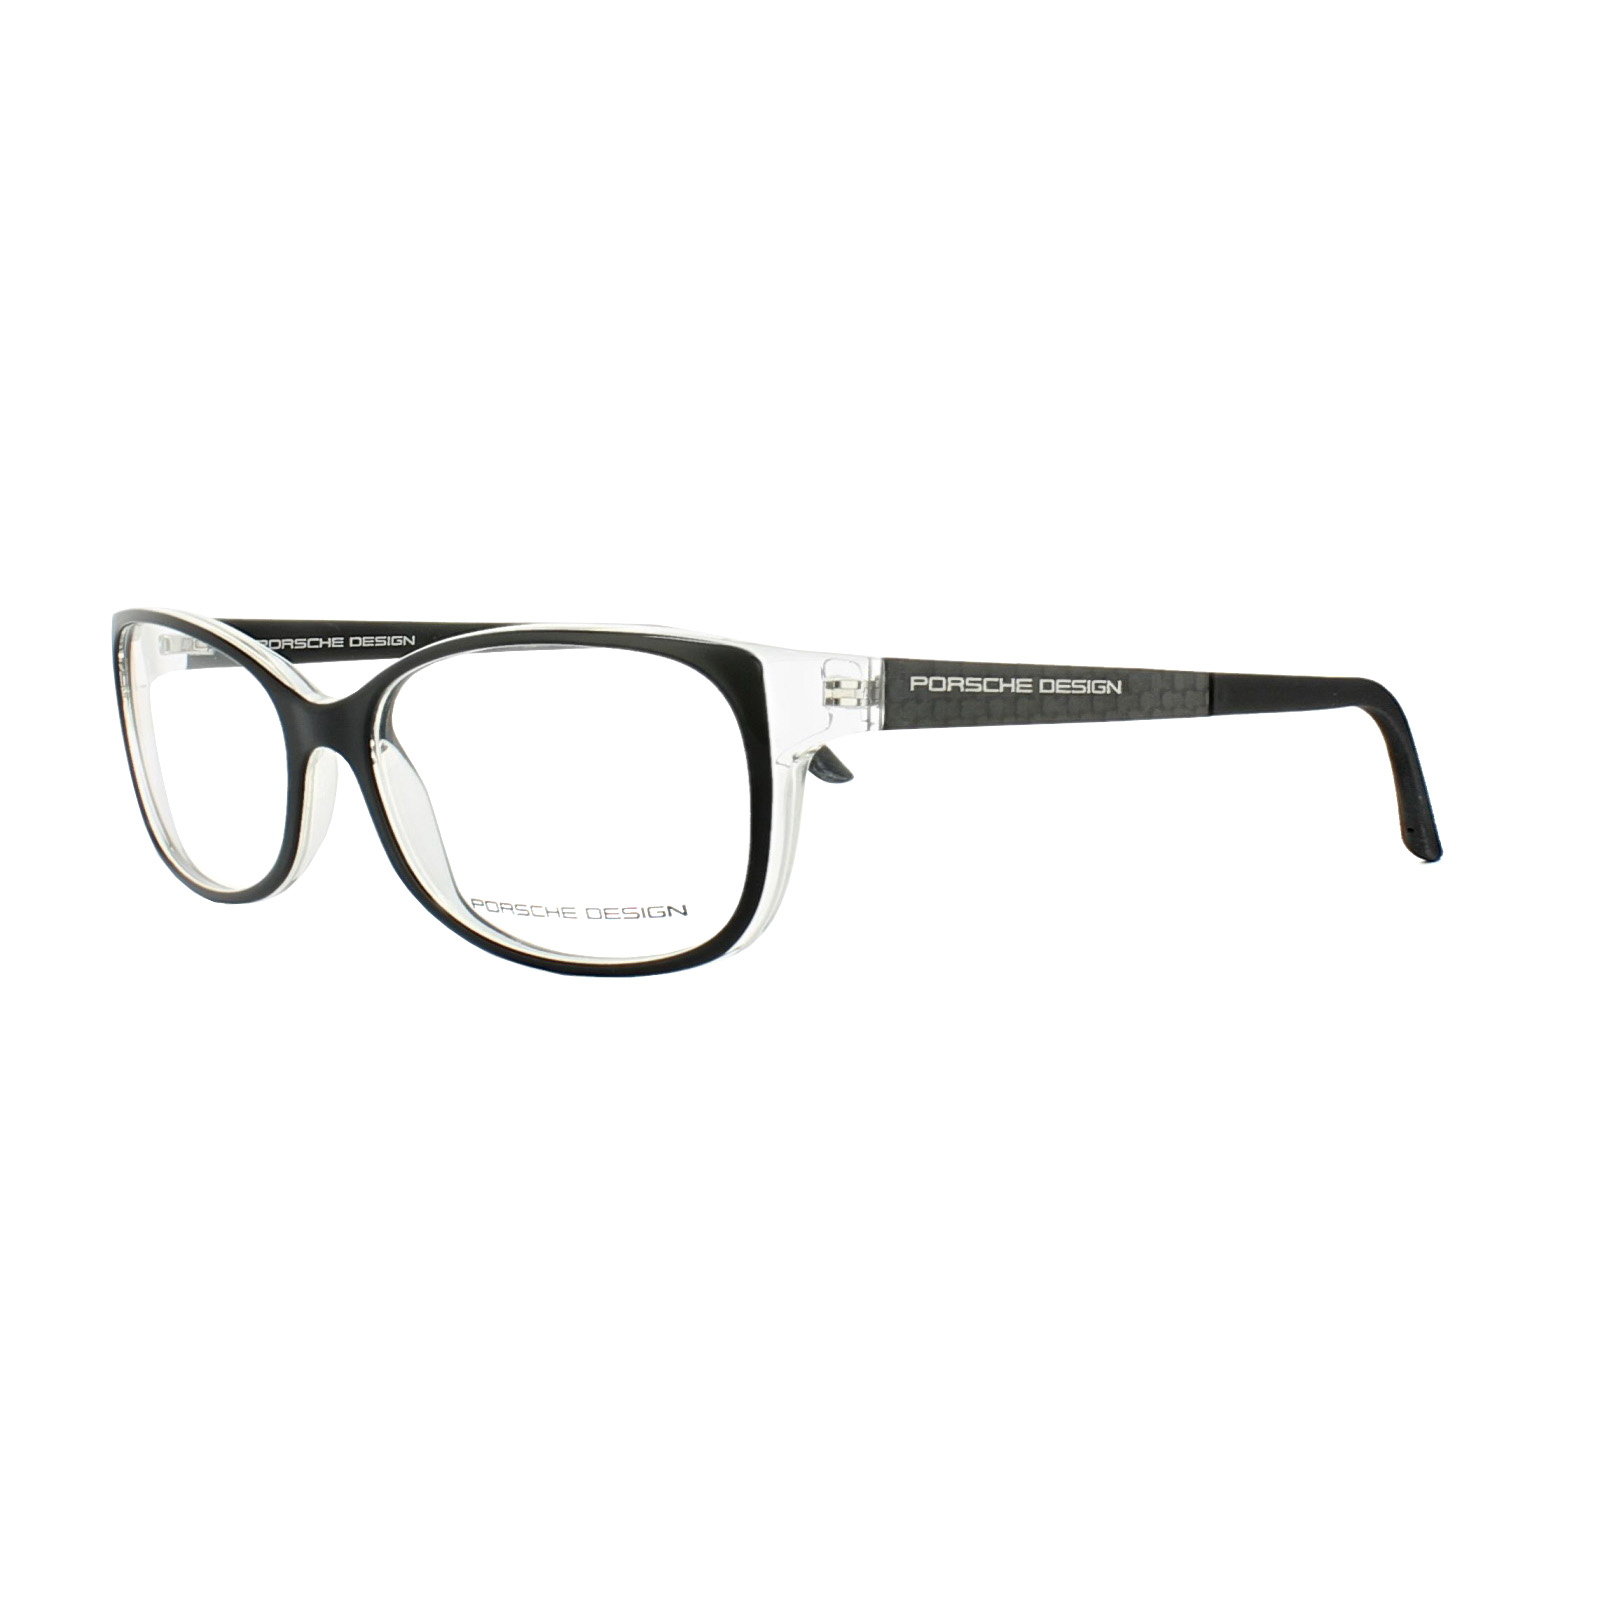 Porsche Design Glasses Frame : Cheap Porsche Design P8247 Glasses Frames - Discounted ...